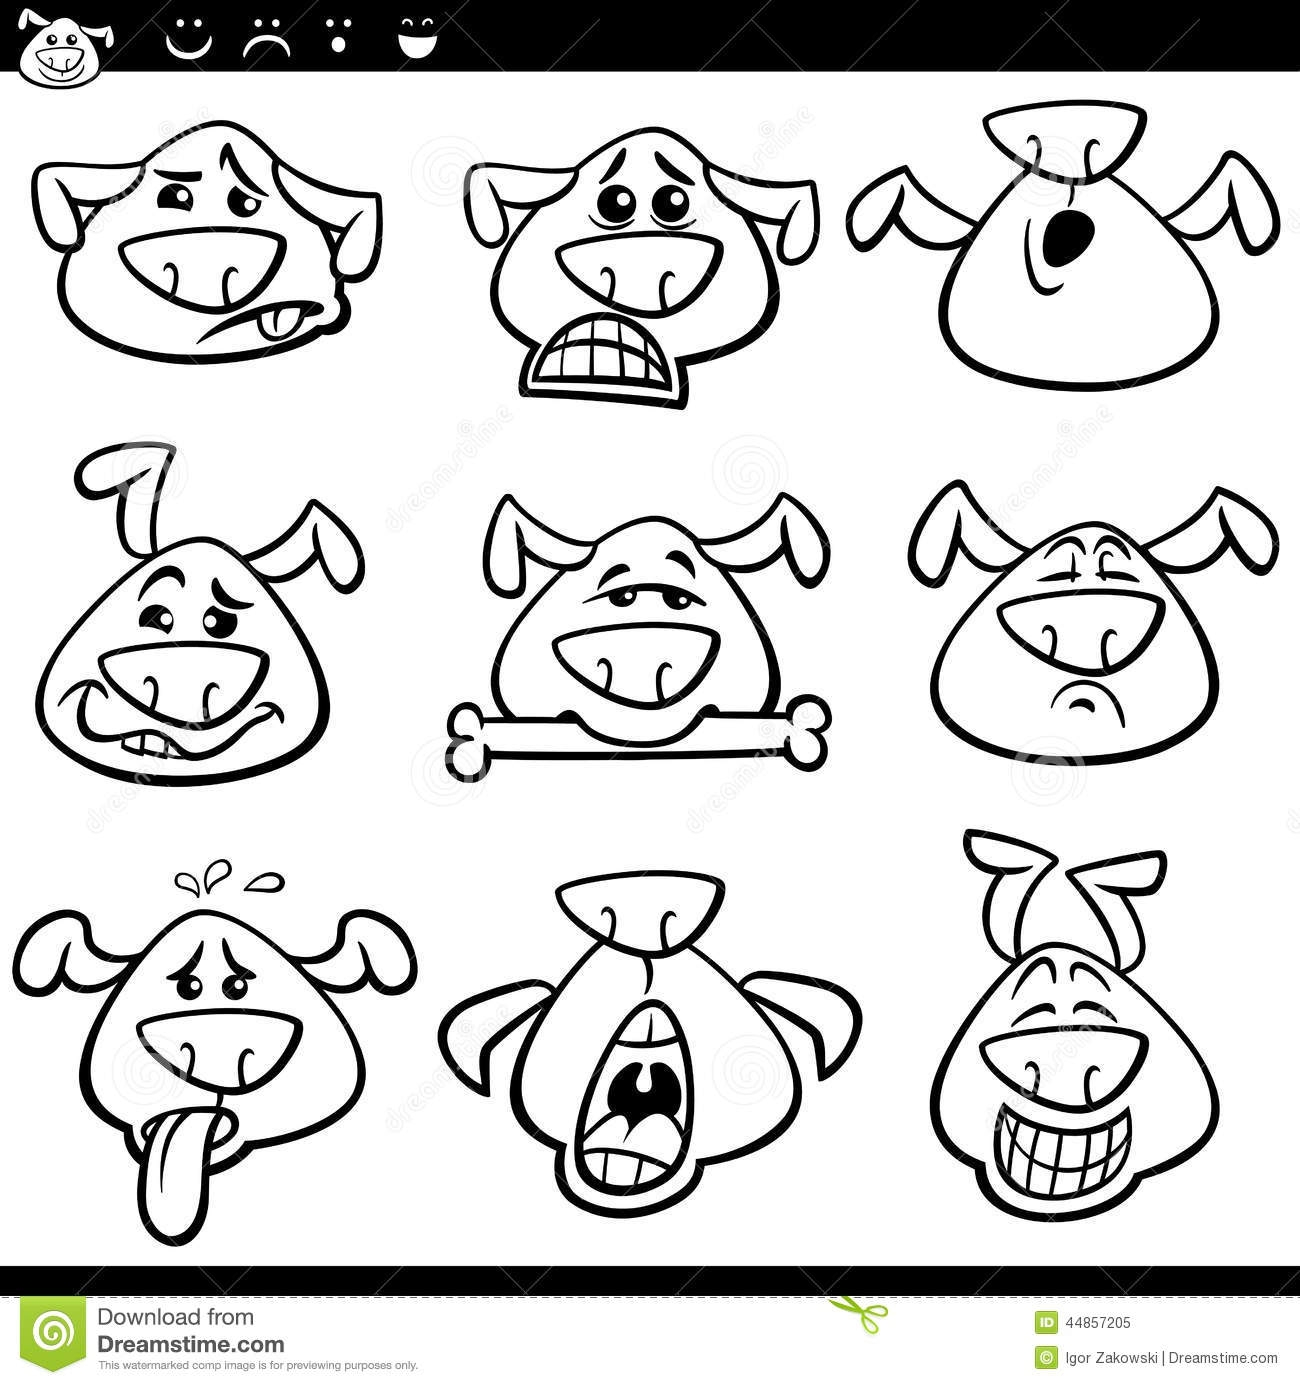 anger management coloring pages - stock illustration dog emoticons cartoon coloring page black white illustration funny dogs expressing emotions set book image